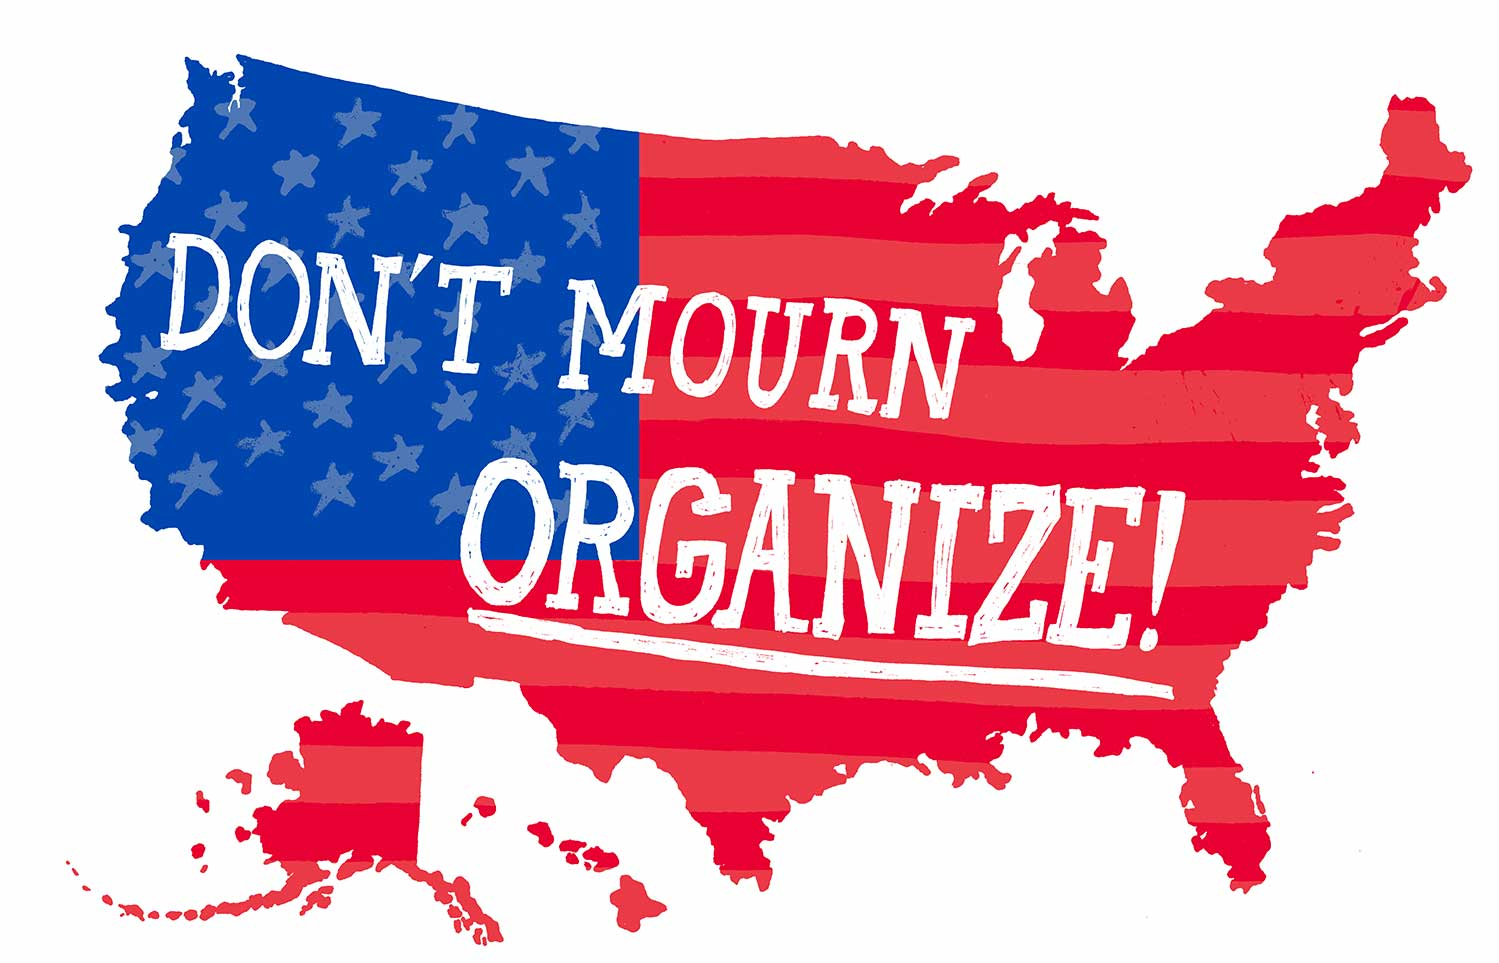 Graphic of a map of the United States overlaid with an American flag, 'Don't Mourn, Organize!""